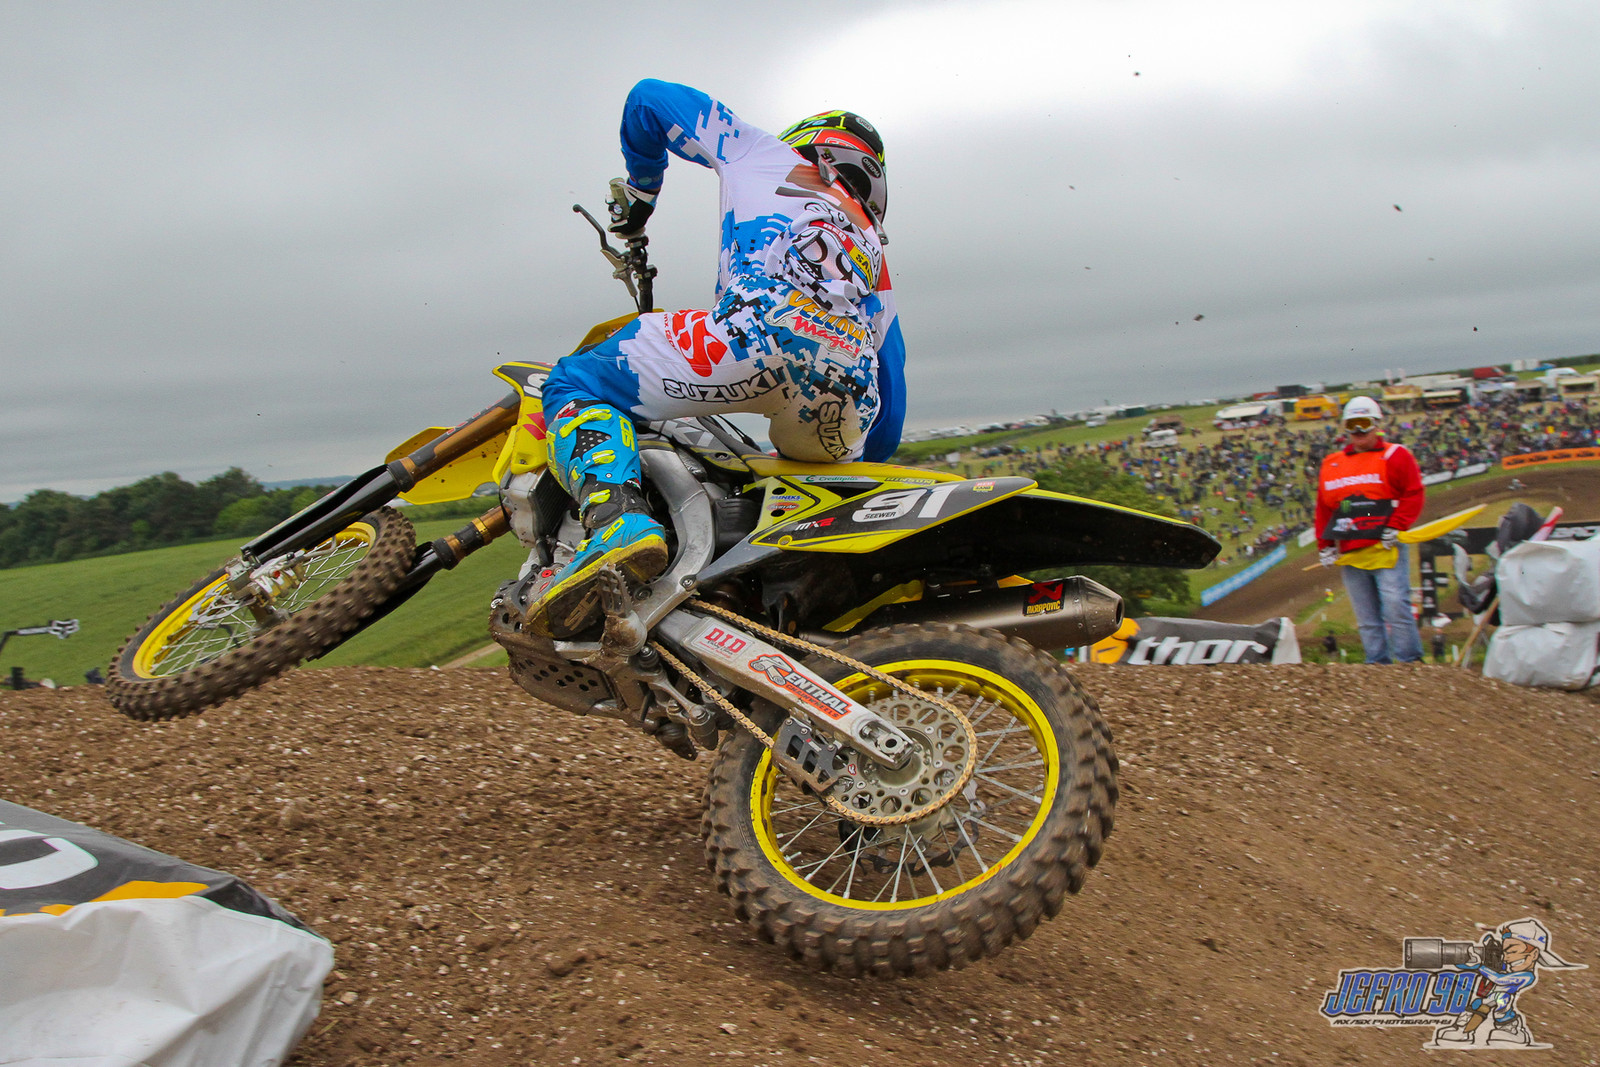 Jeremy Seewer - Photo Gallery: MXGP of Great Britain - Motocross Pictures - Vital MX